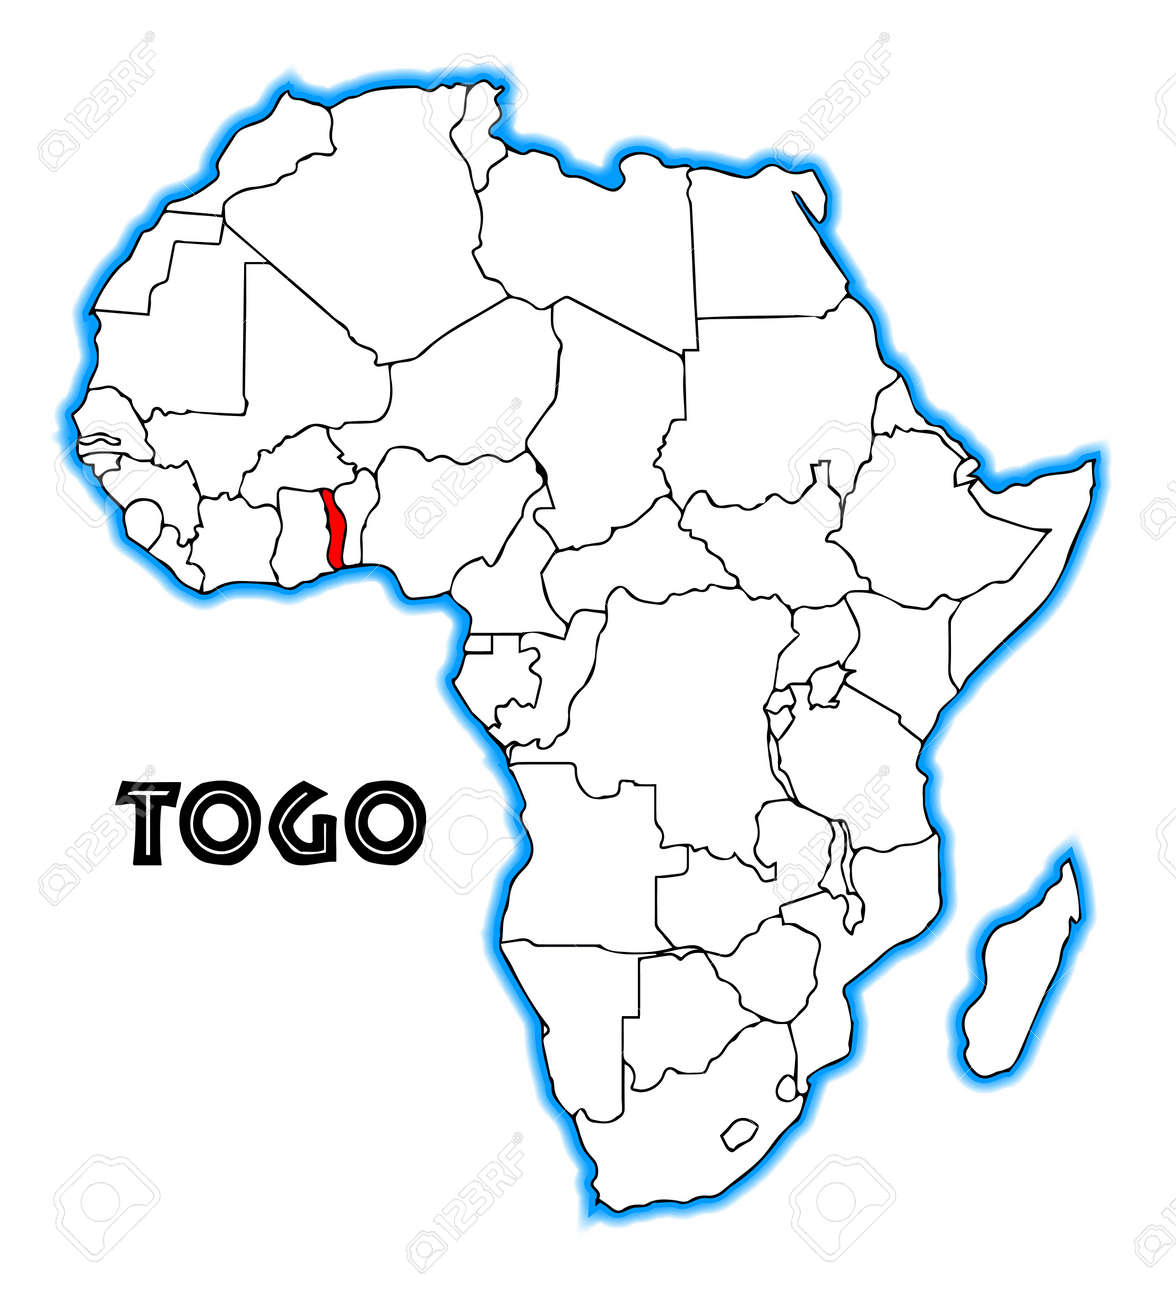 Togo Outline Inset Into A Map Of Africa Over A White Background - Togo map outline